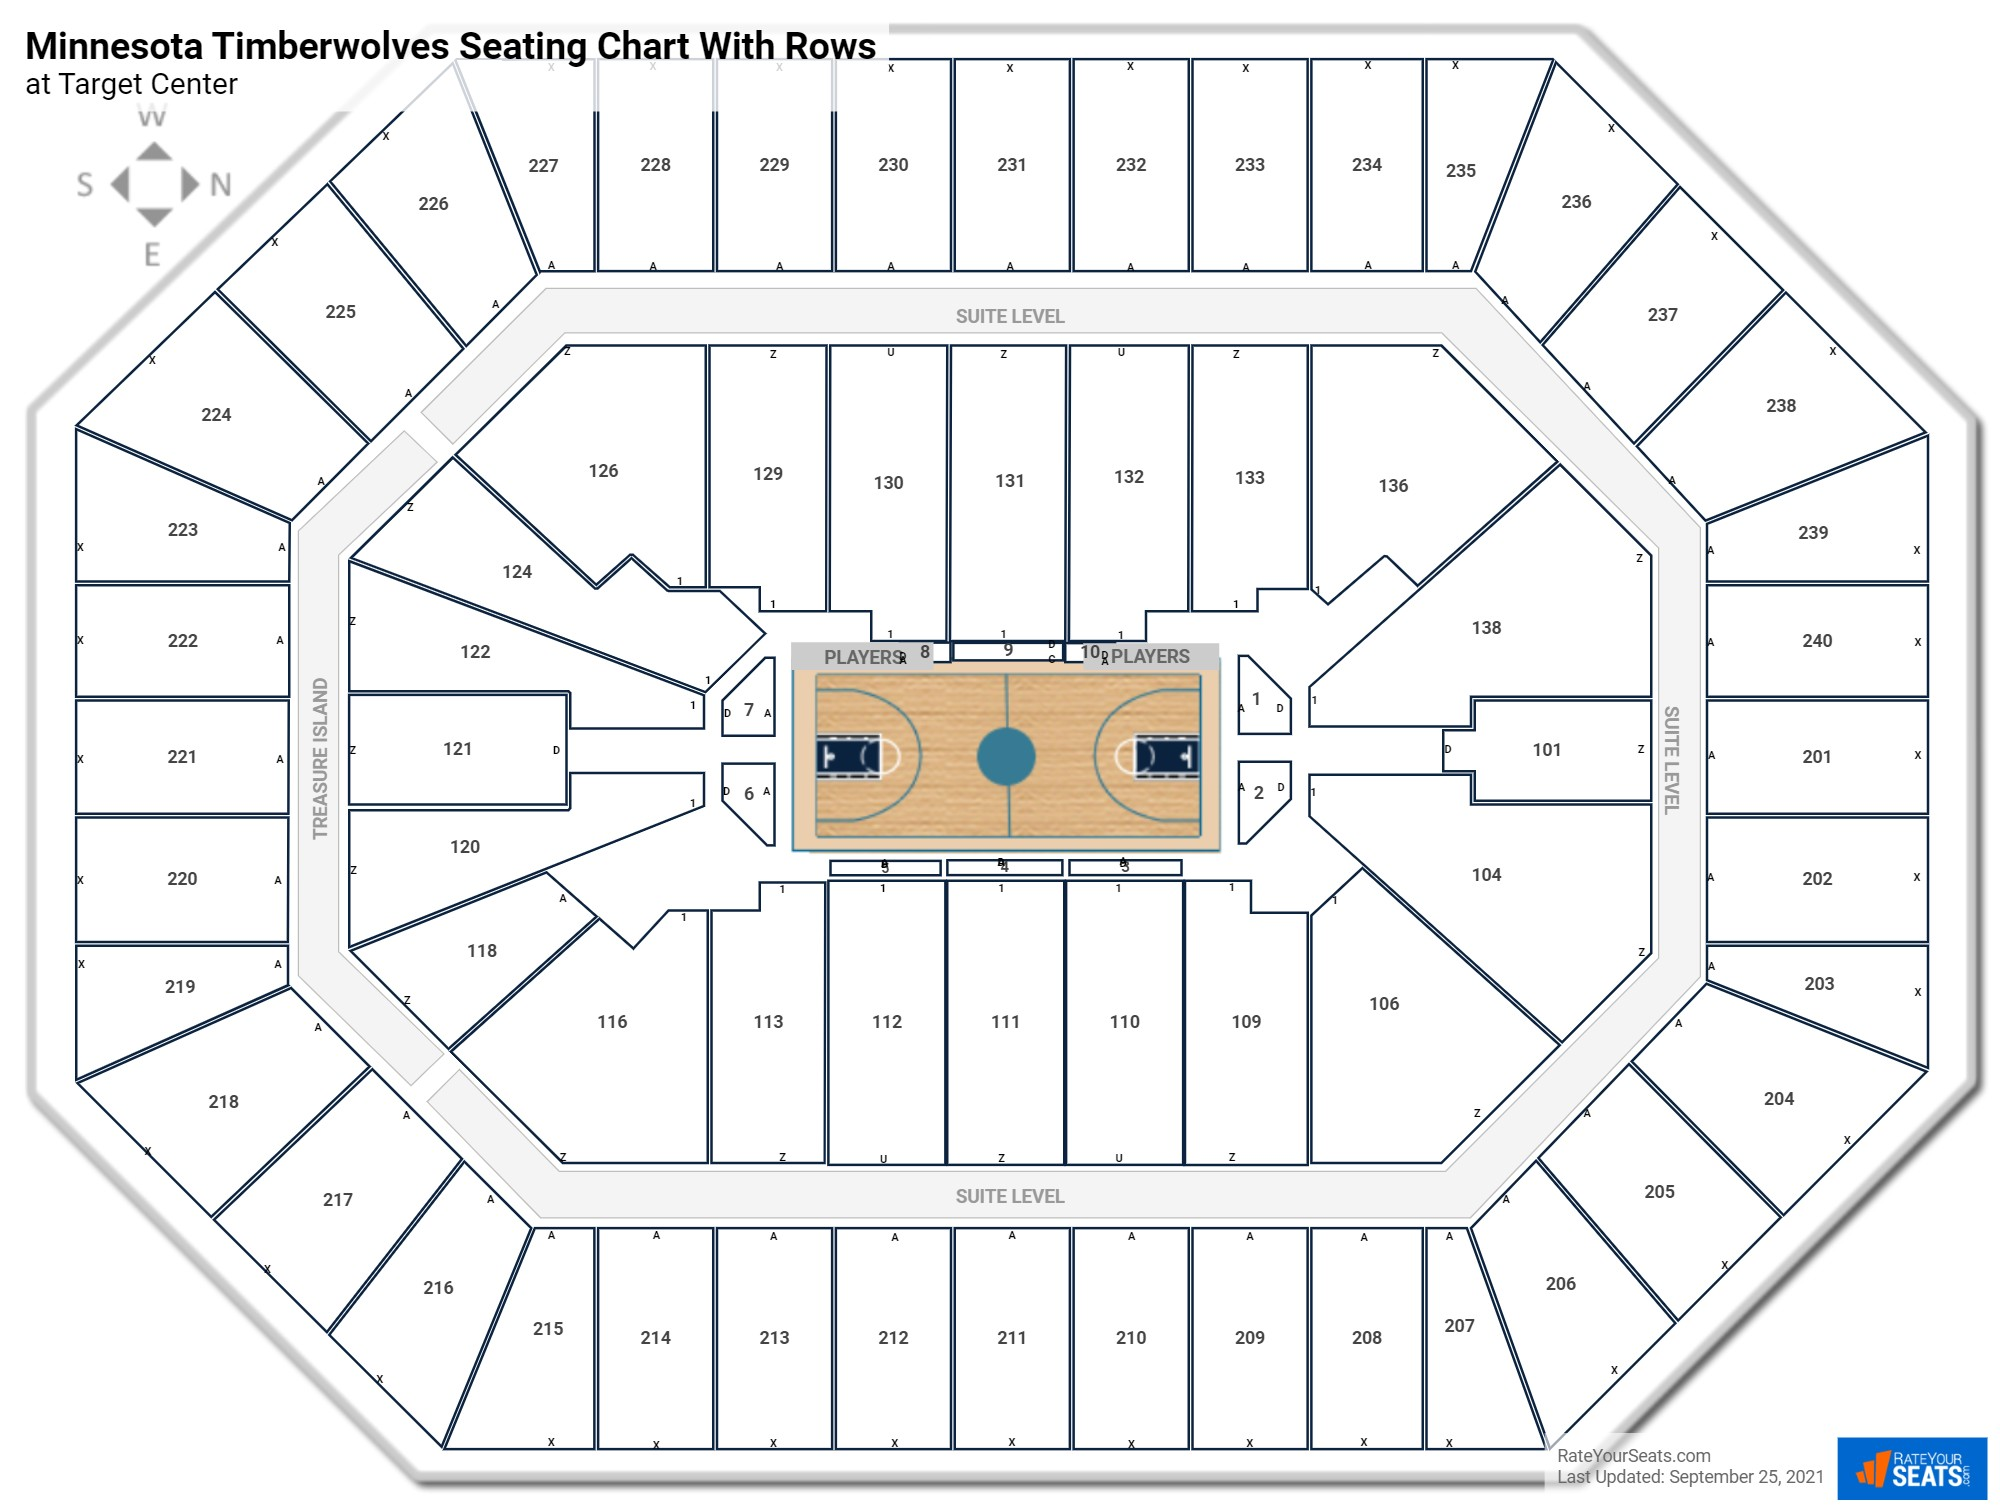 Target Center seating chart with rows basketball